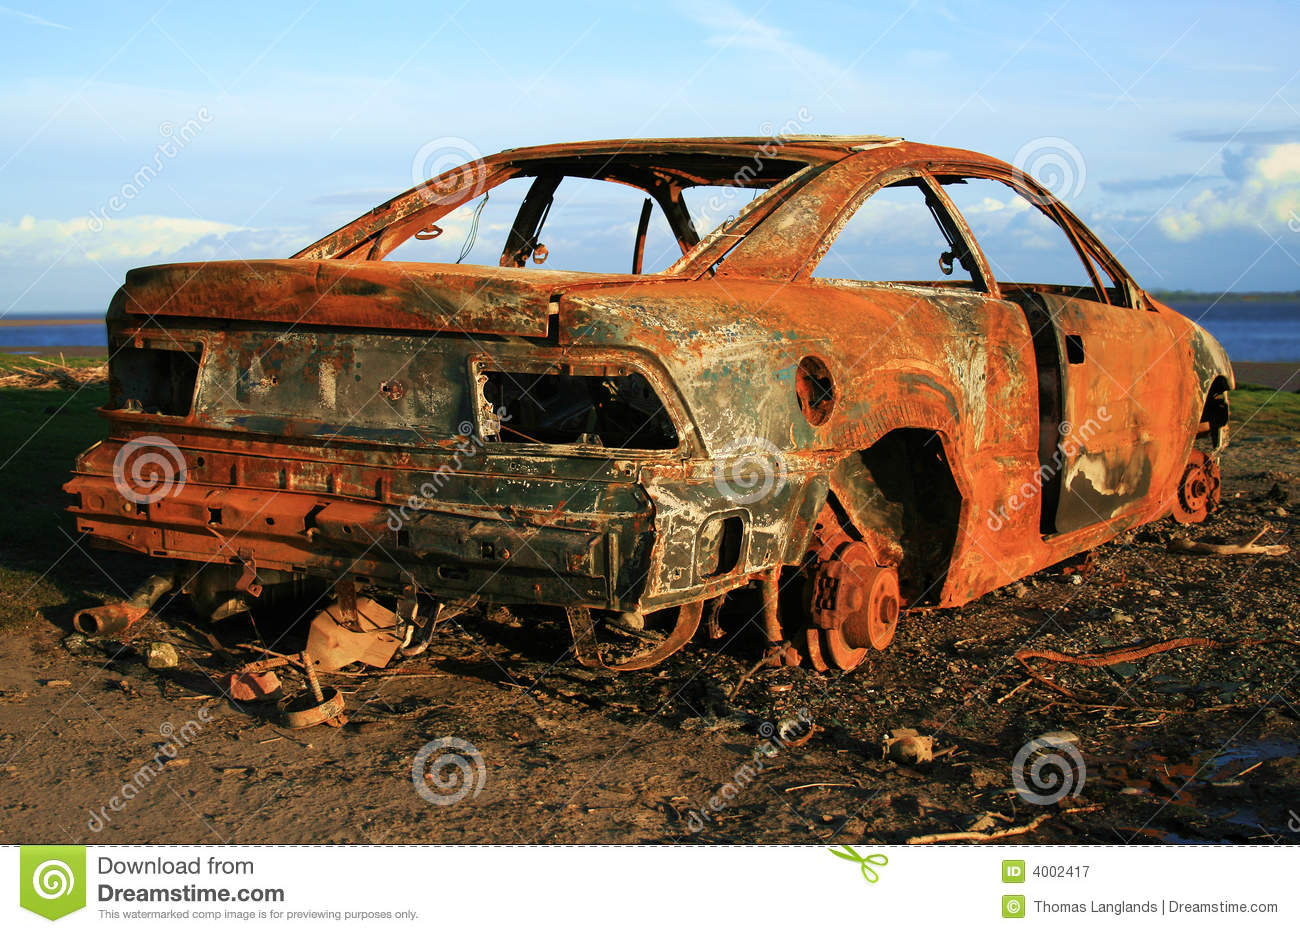 Car Audio Wallpaper Hd Rusty Car Stock Image Image Of Rusting Scrapyard